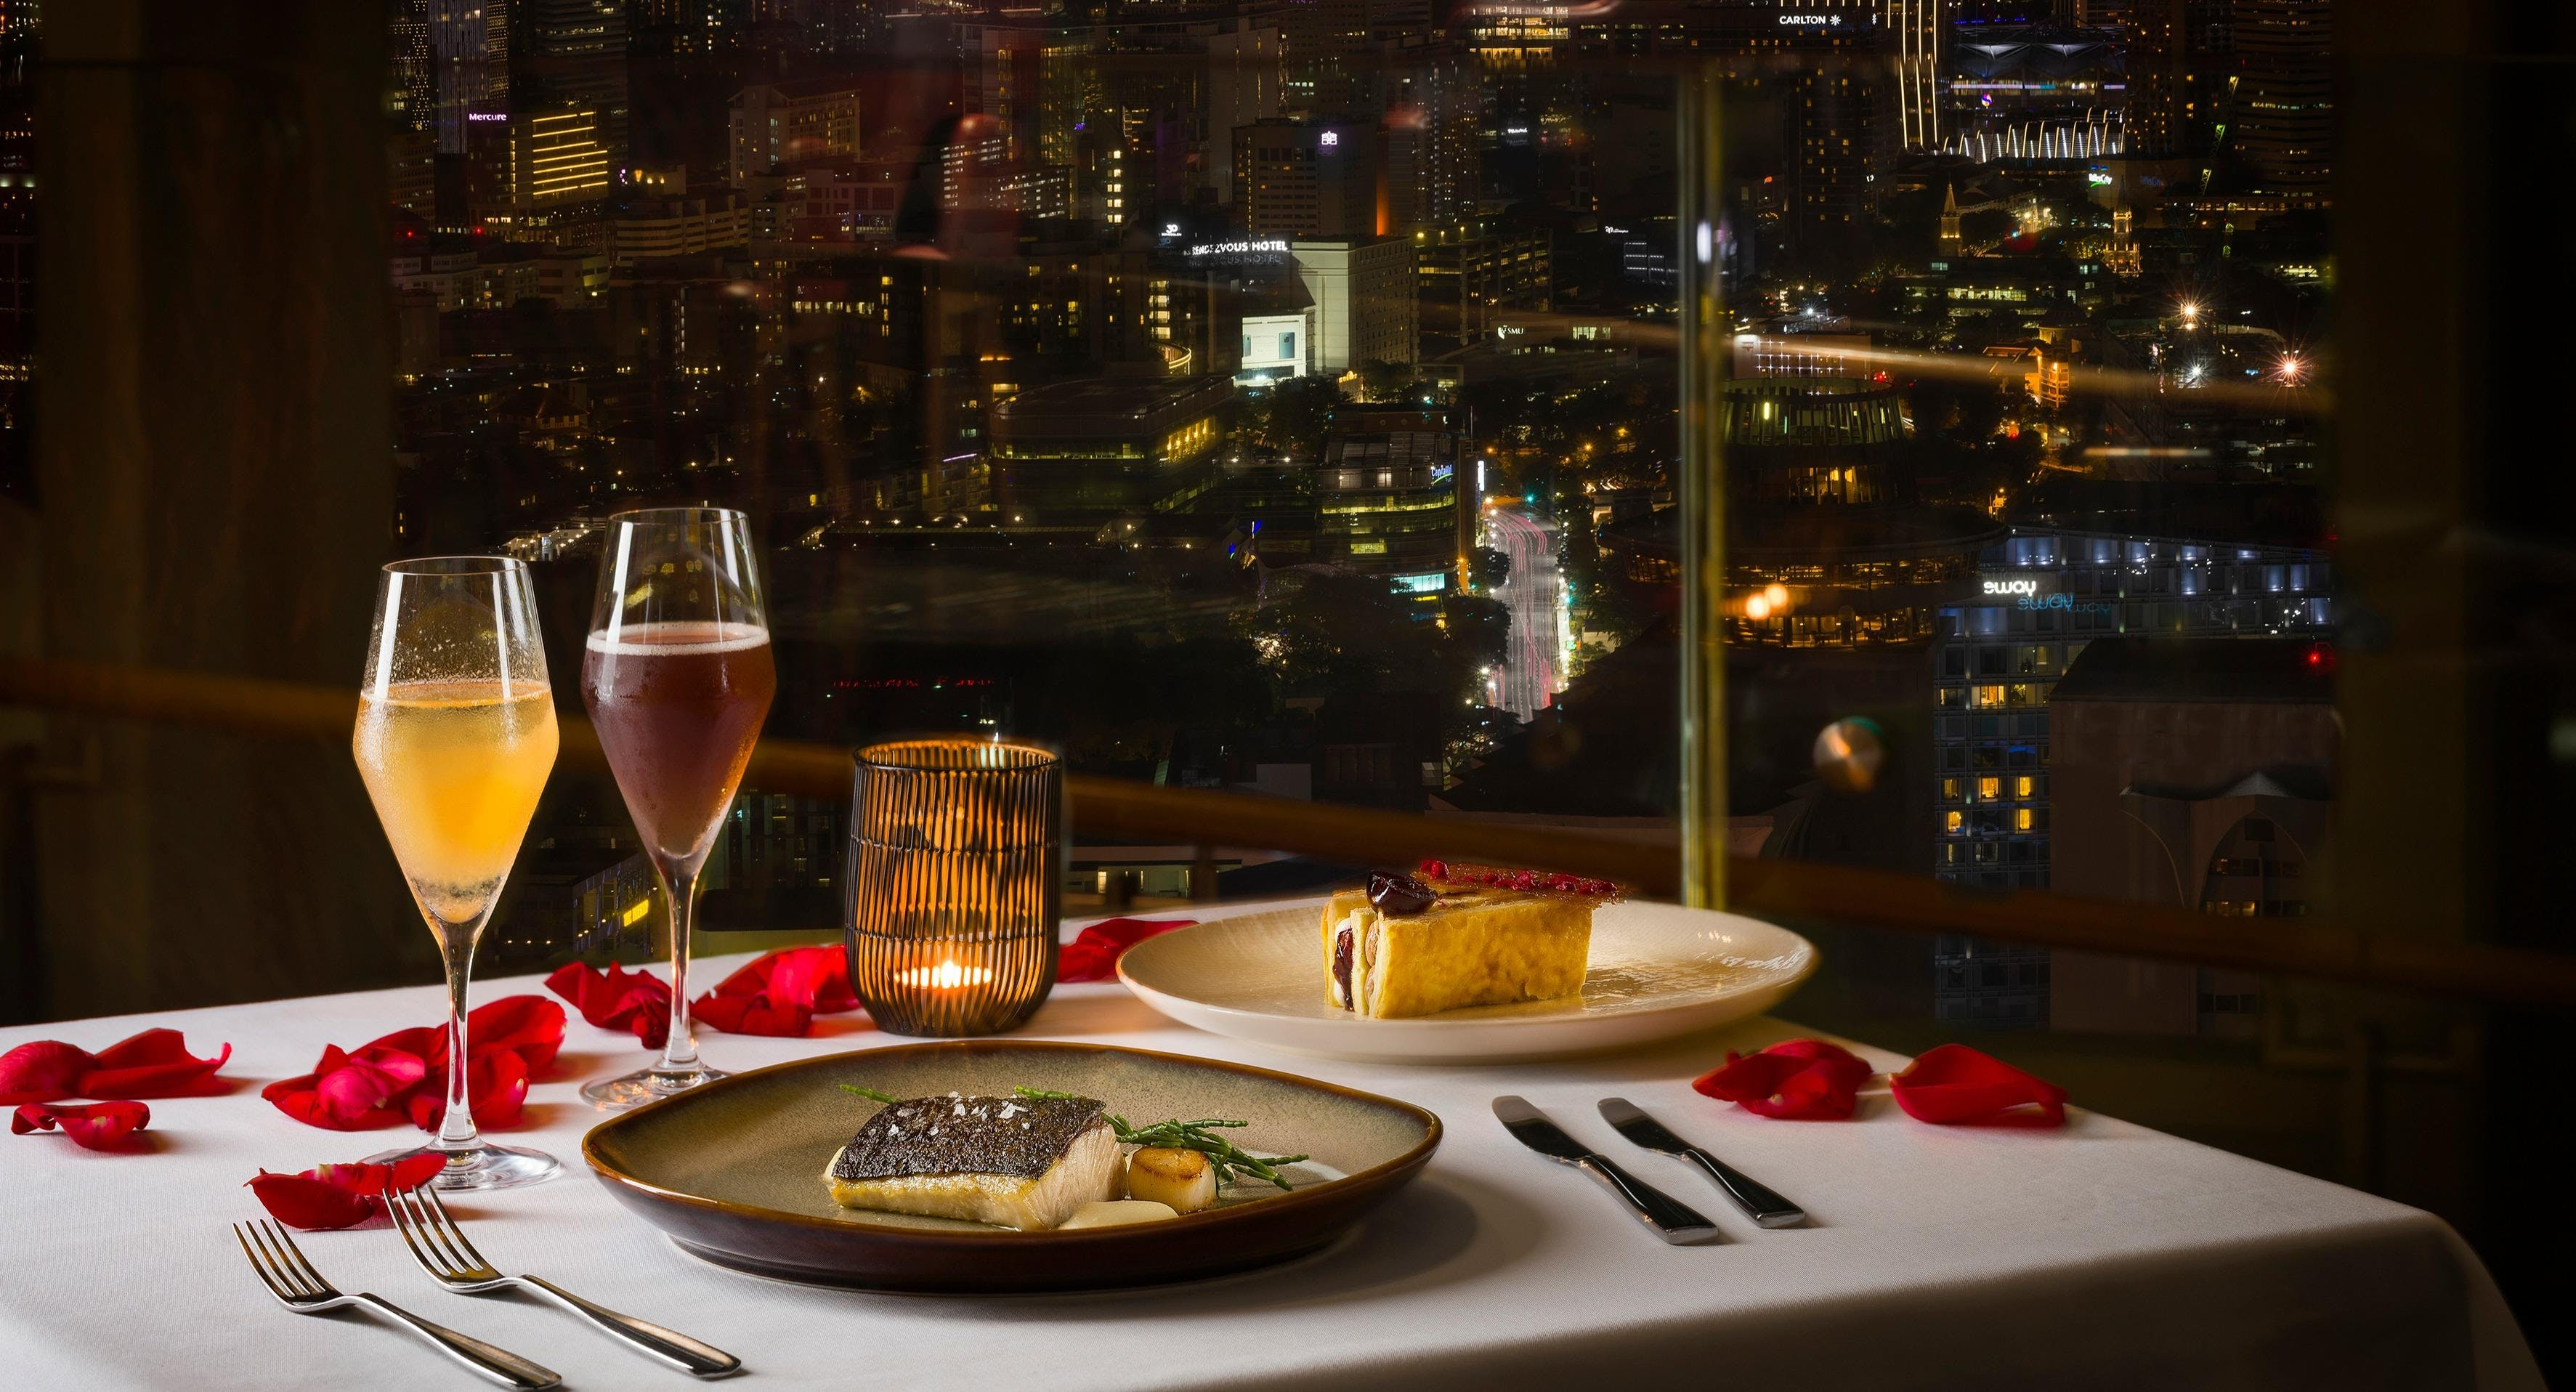 Salt Grill & Sky Bar Singapore image 1